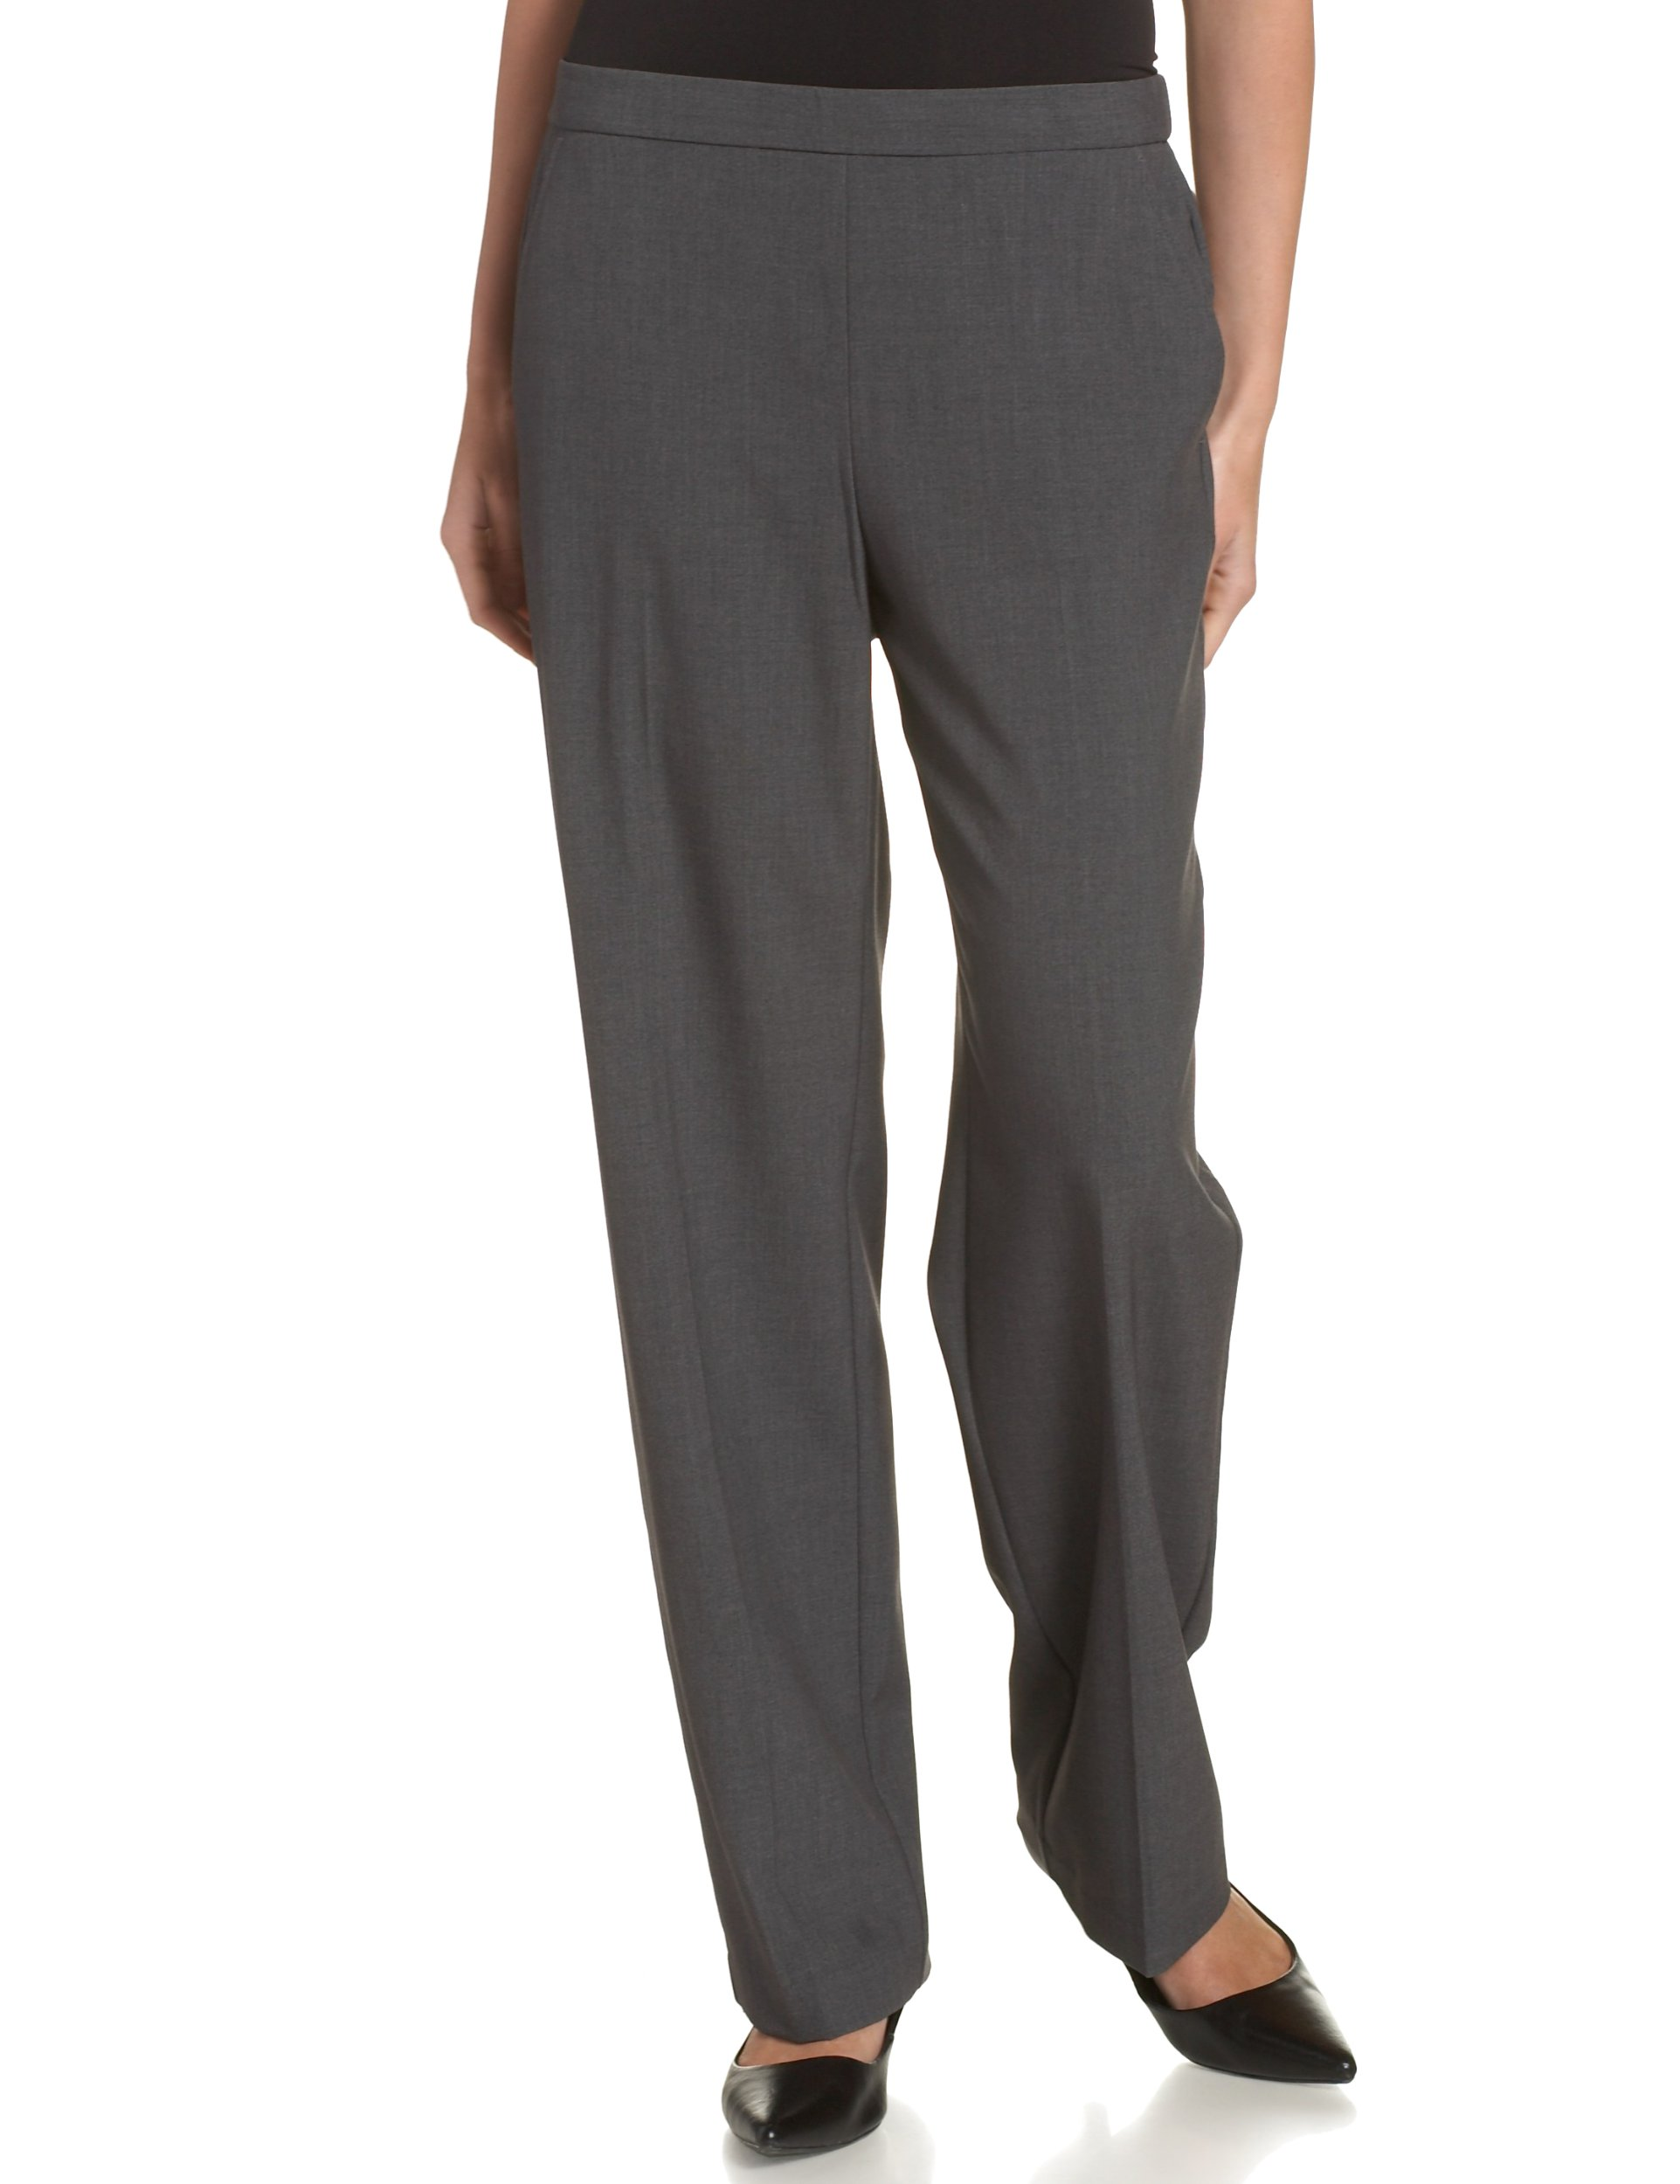 Briggs New York Women's Petite All Around Comfort Pant, Heather Grey, 16P by Briggs